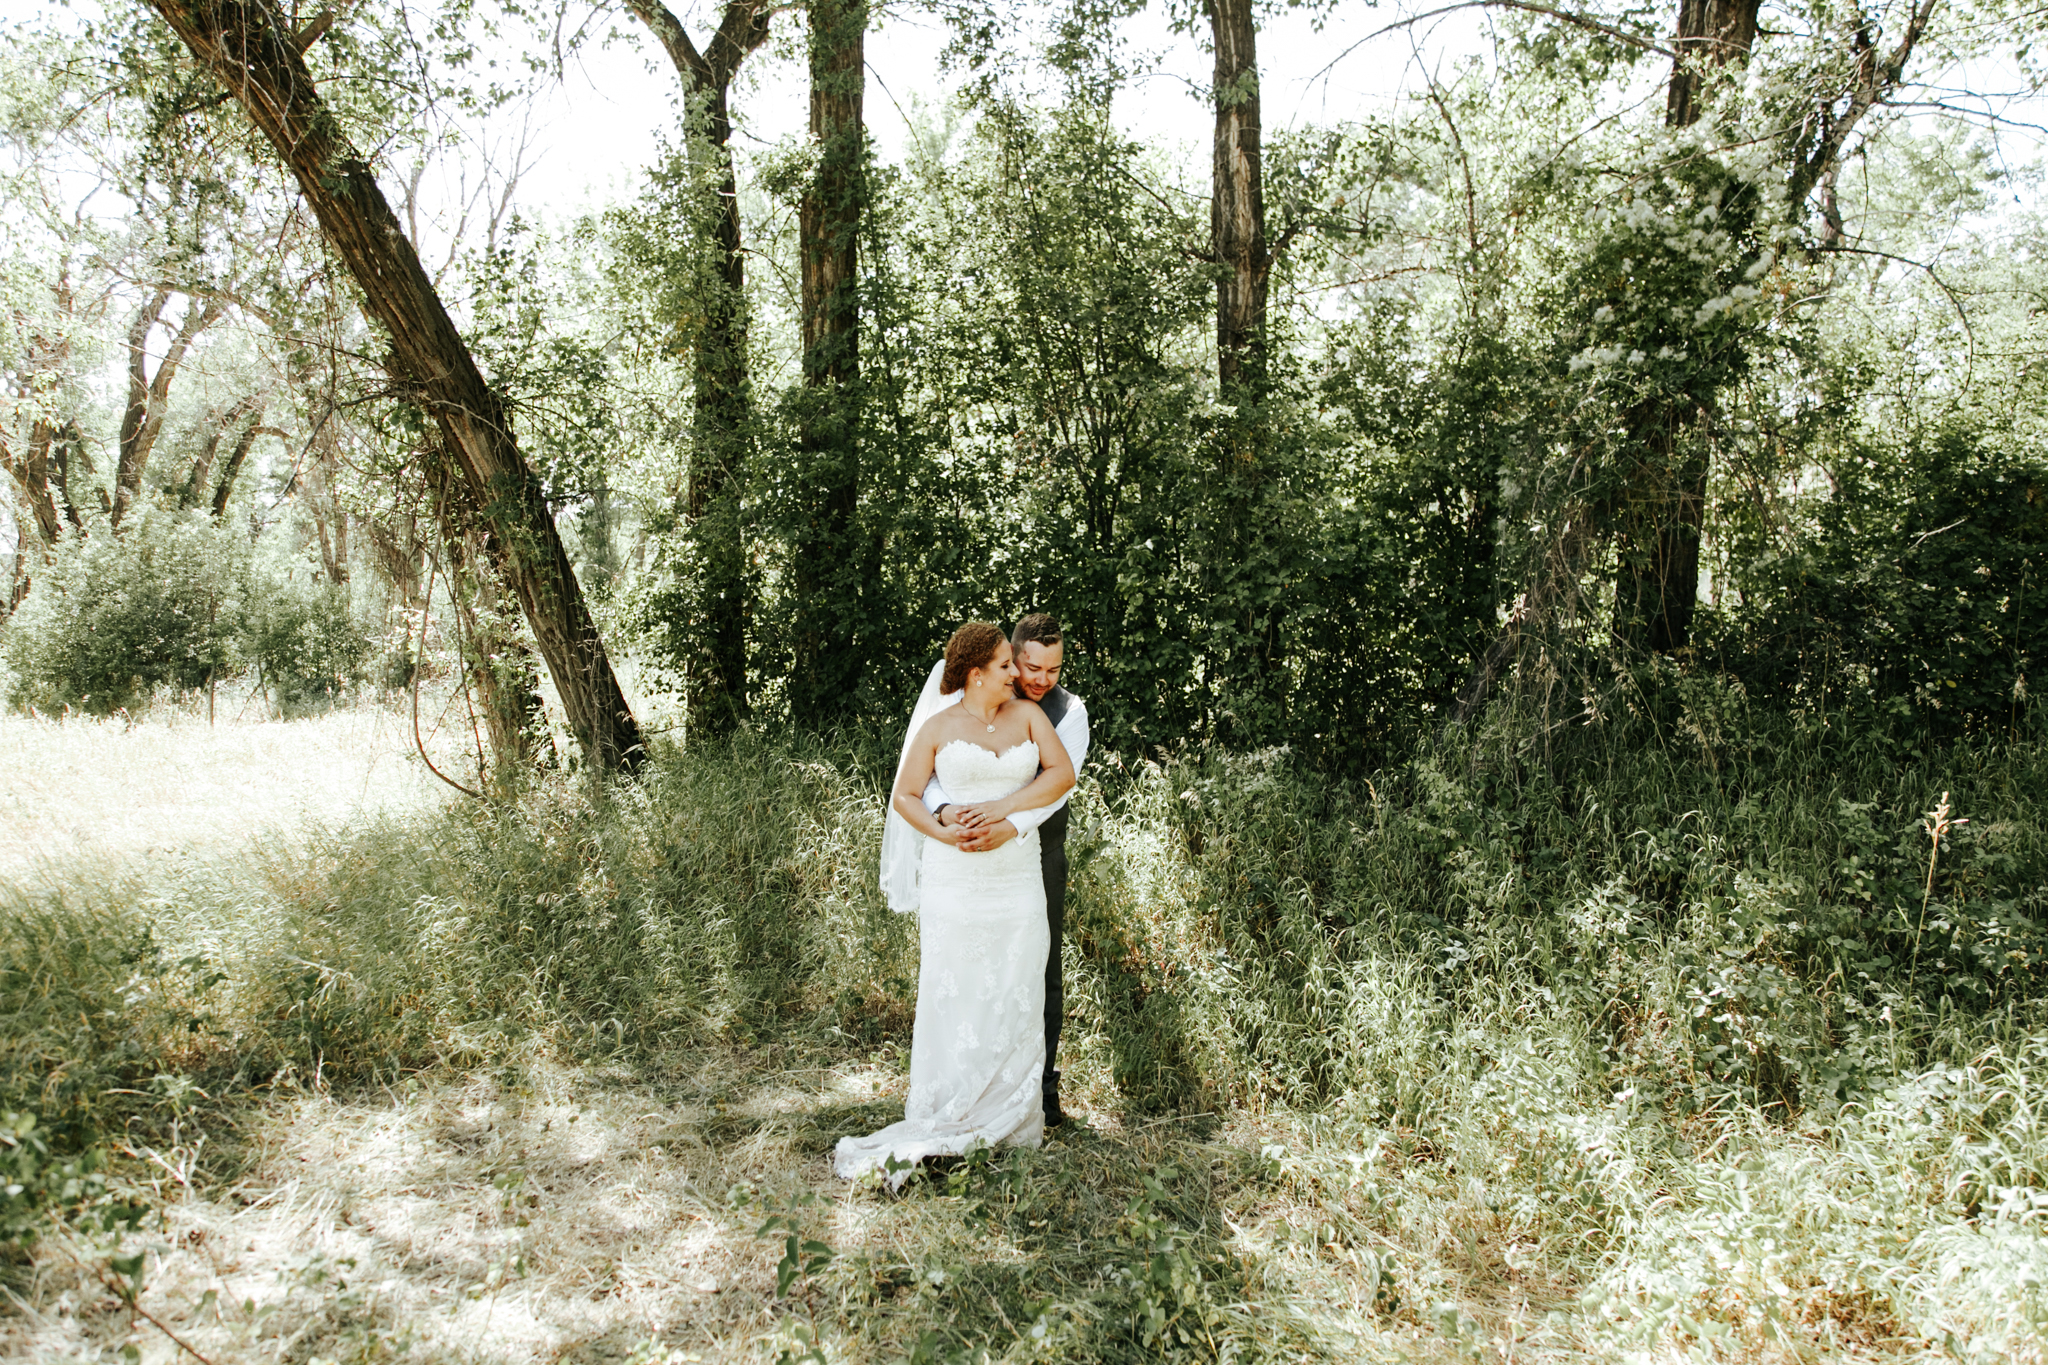 lethbridge-wedding-photographer-love-and-be-loved-photography-trent-danielle-galt-reception-picture-image-photo-121.jpg